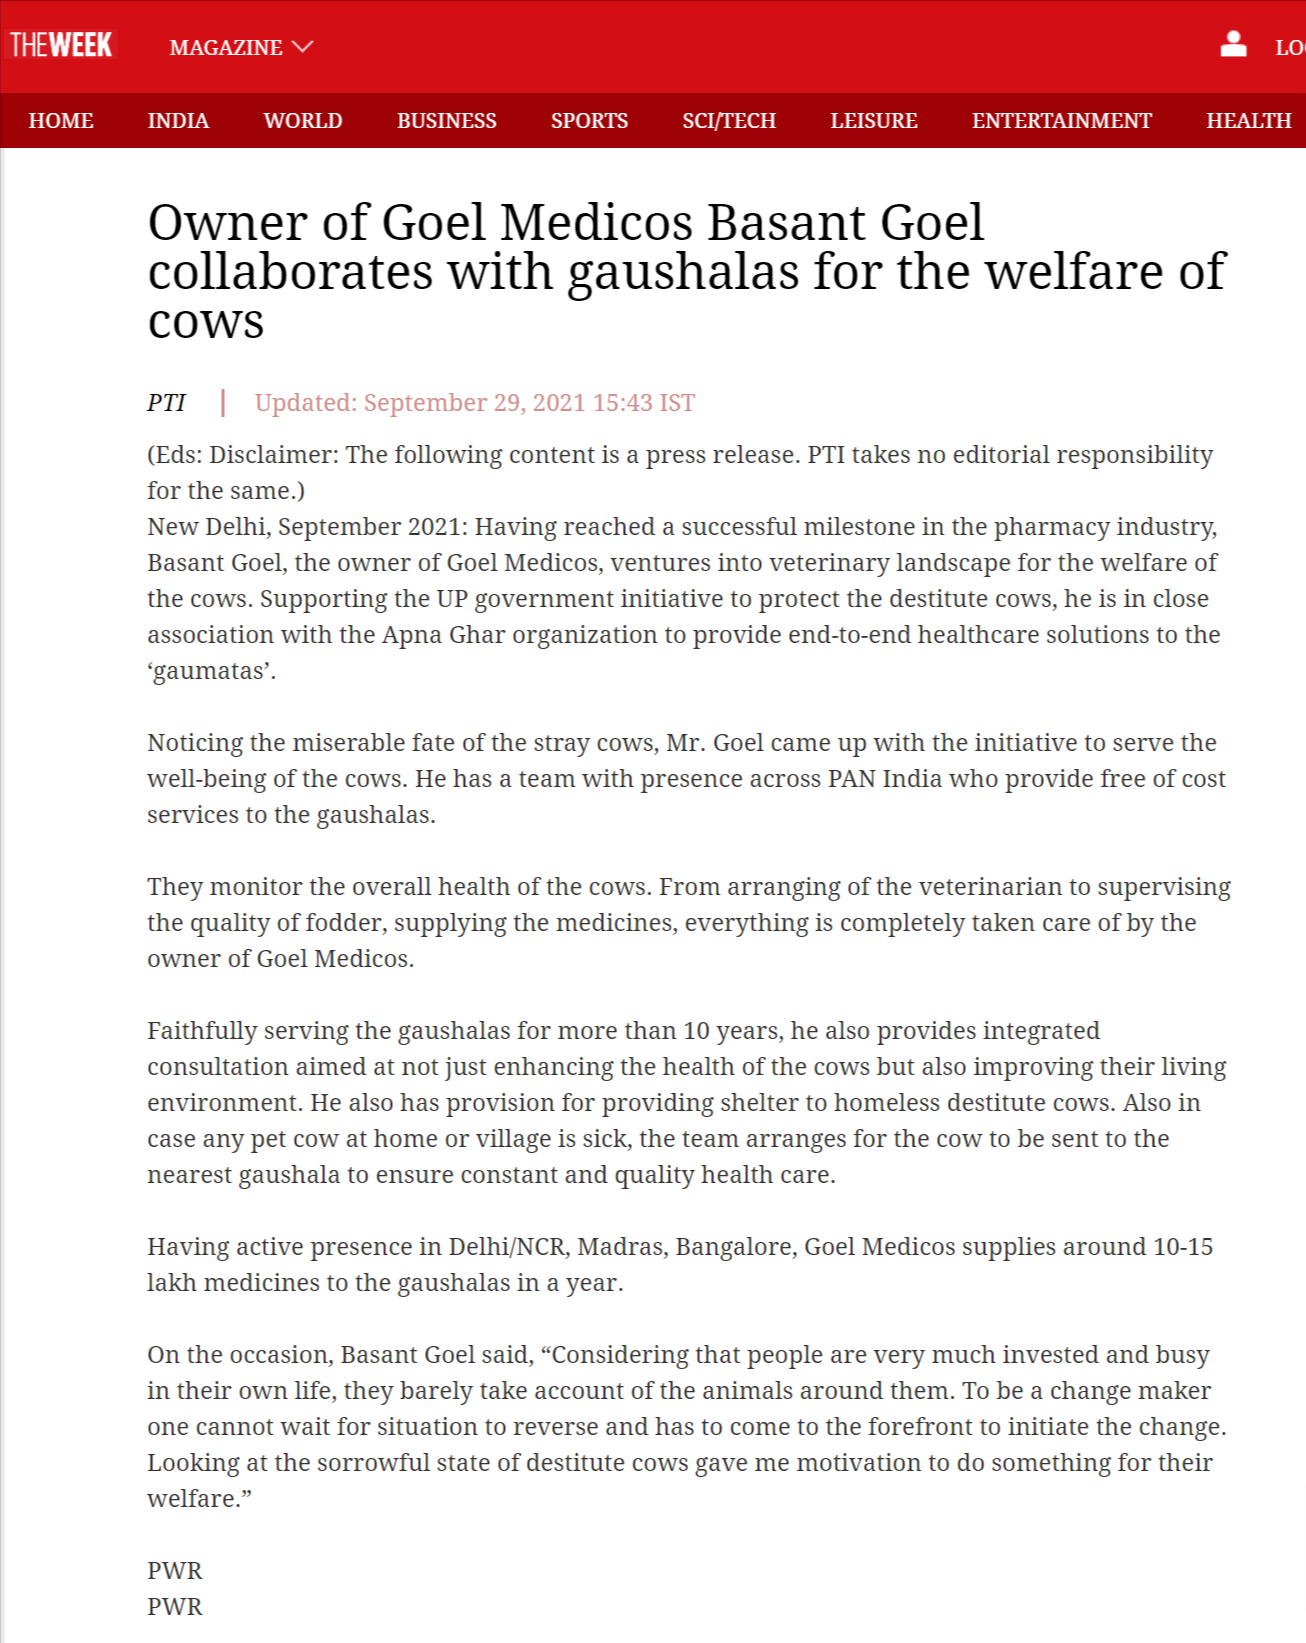 Owner of Goel Medicos Basant Goel collaborates with gaushalas for the welfare of cows